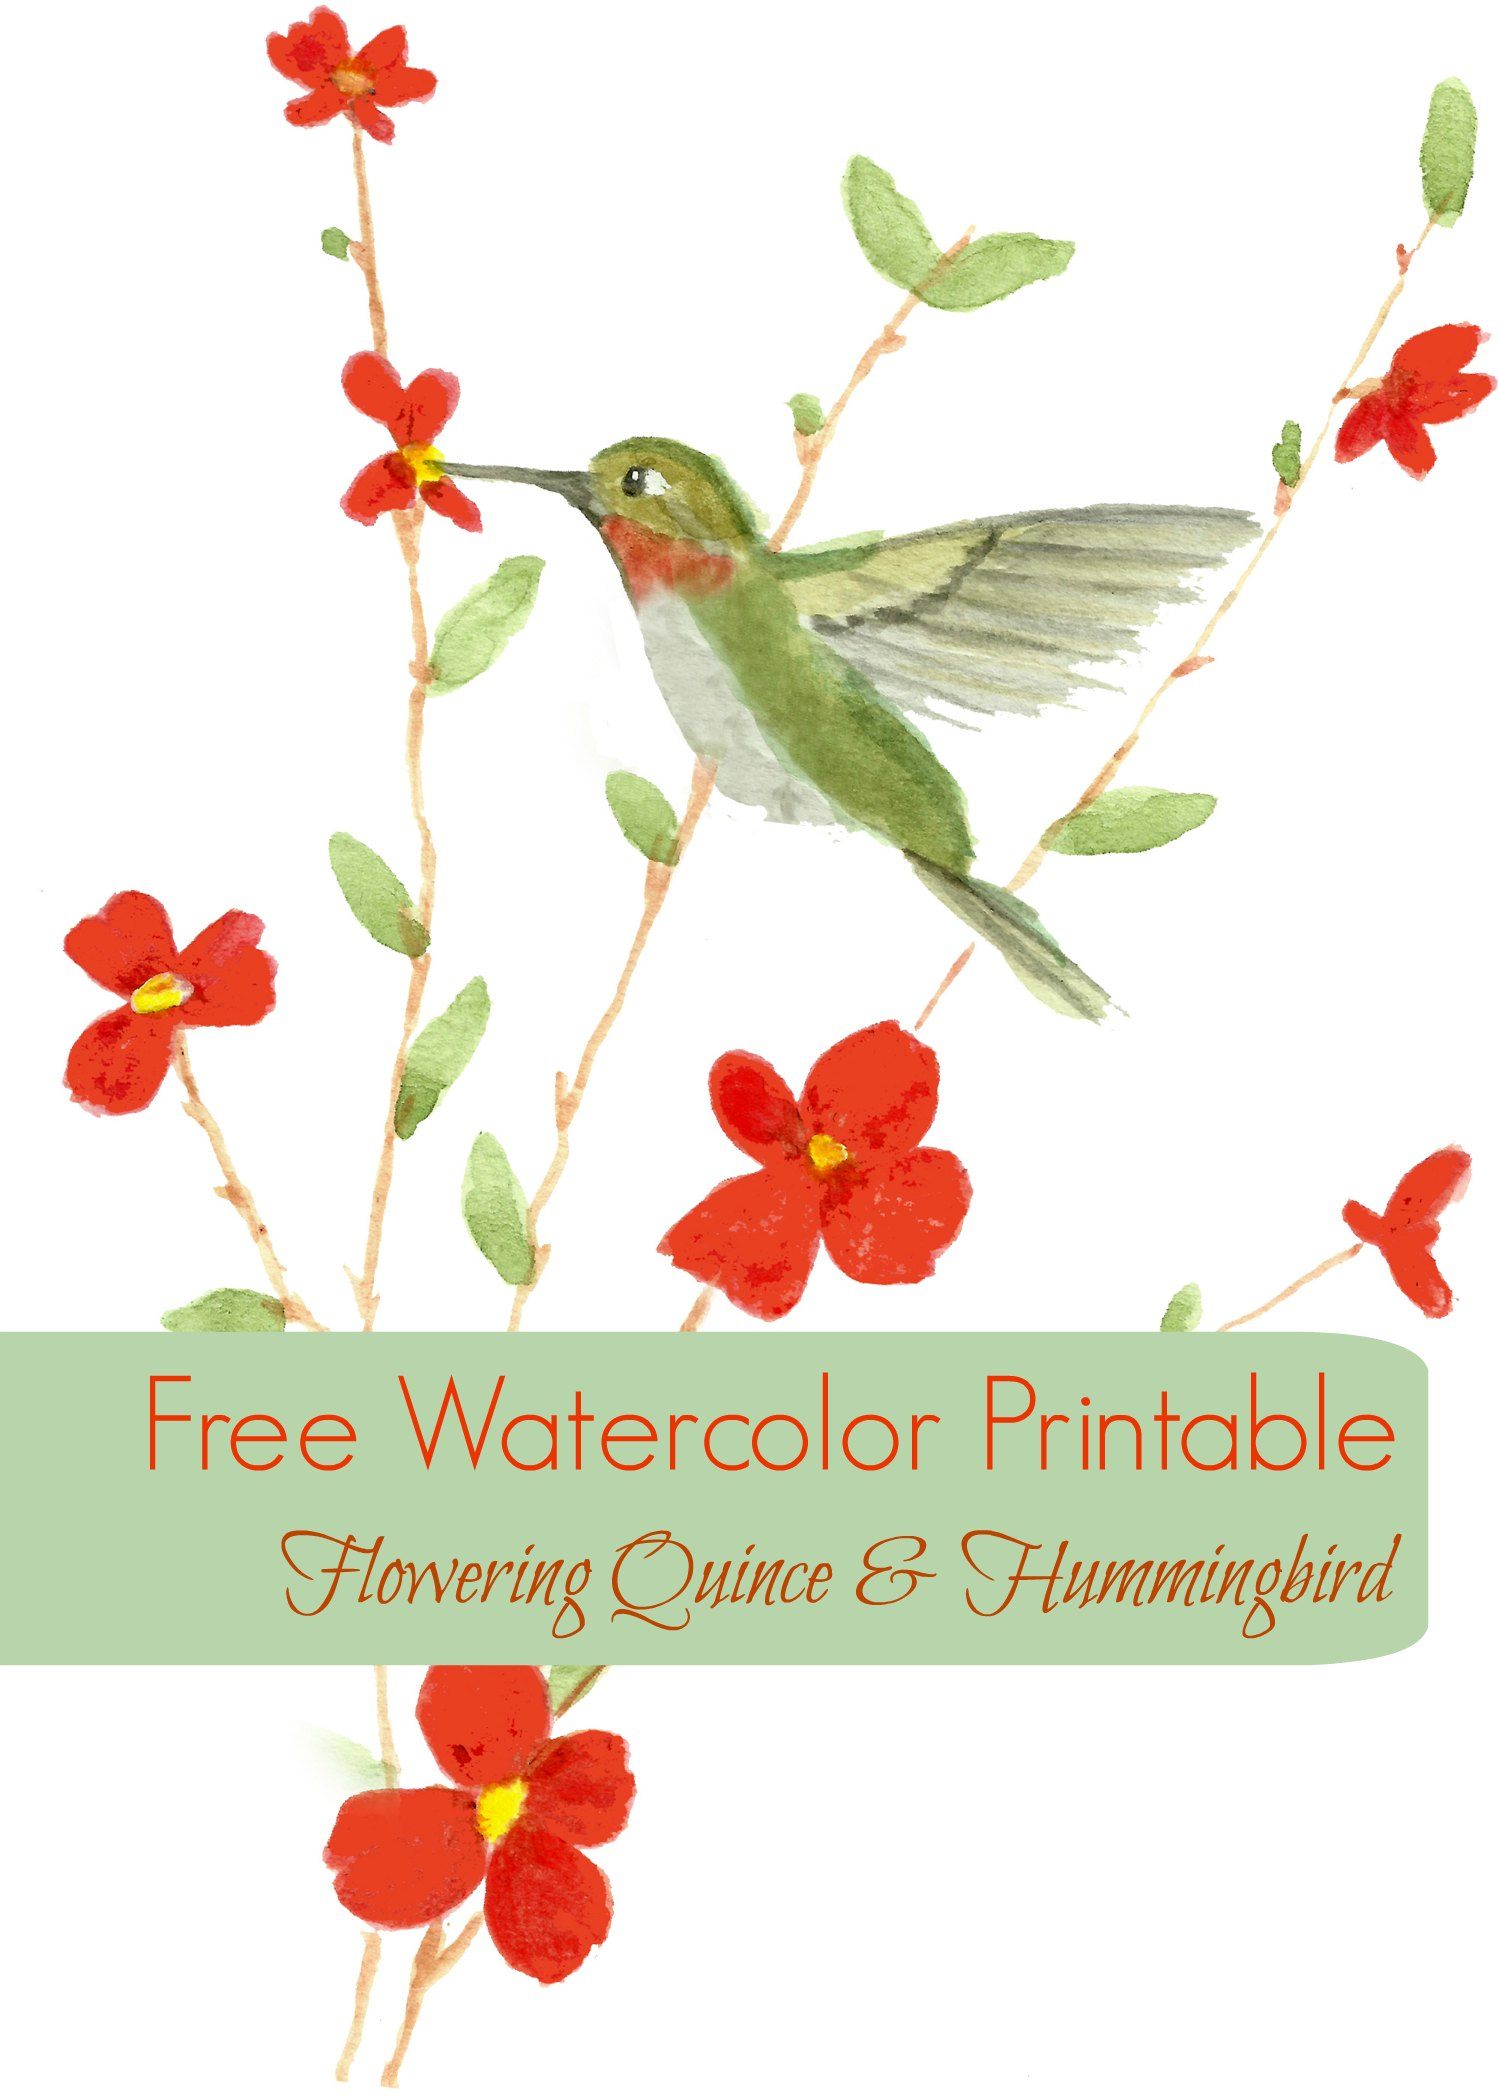 Free Watercolor Printable Card